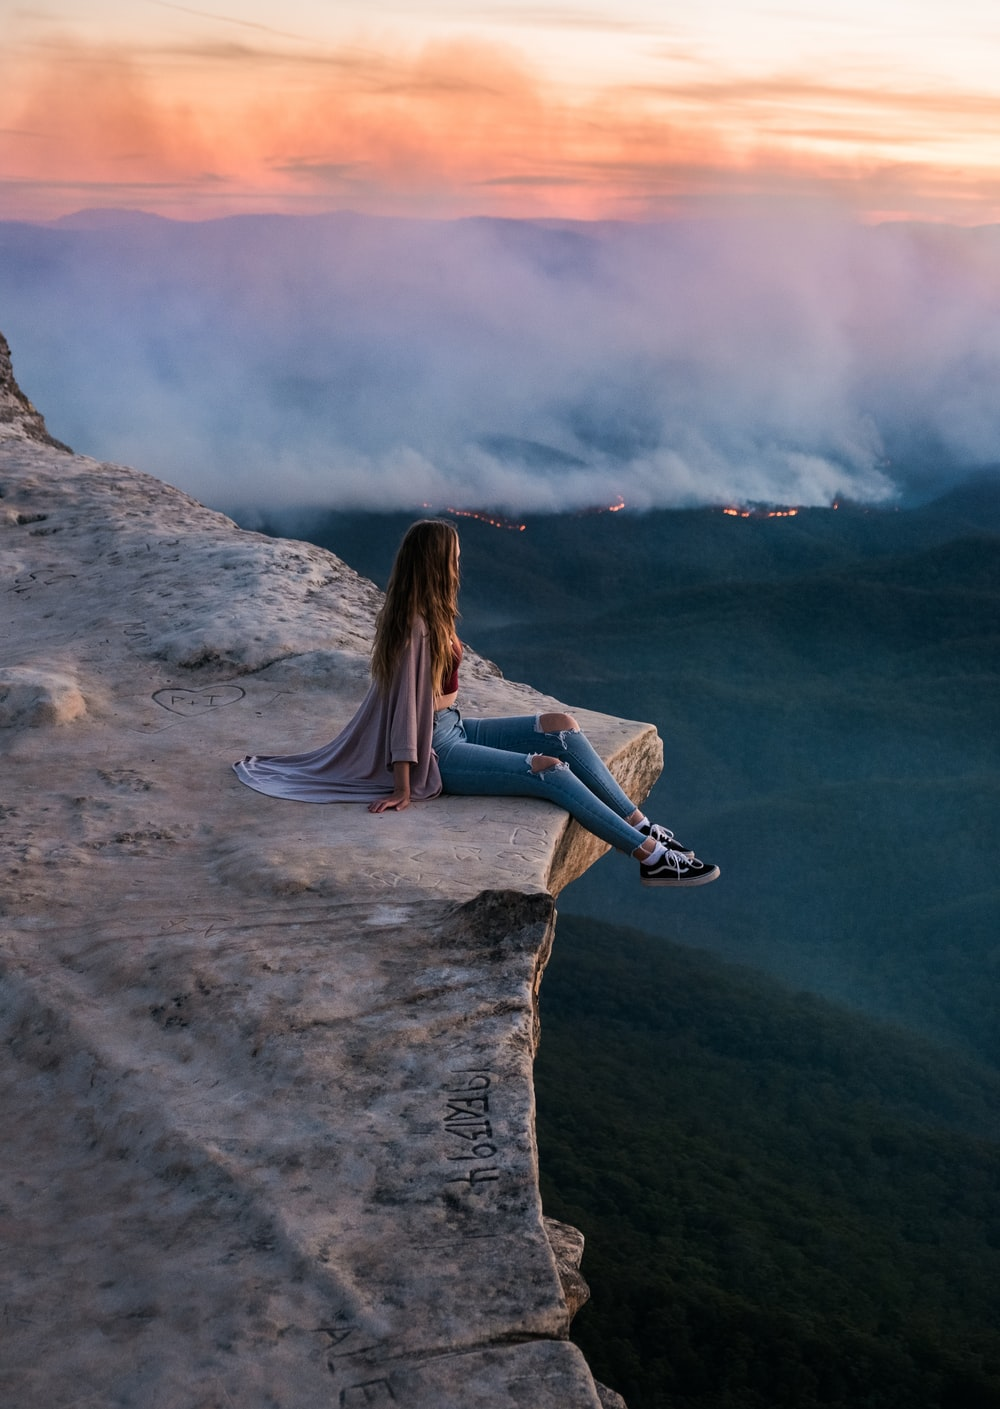 woman in blue denim jeans sitting on rock formation during daytime